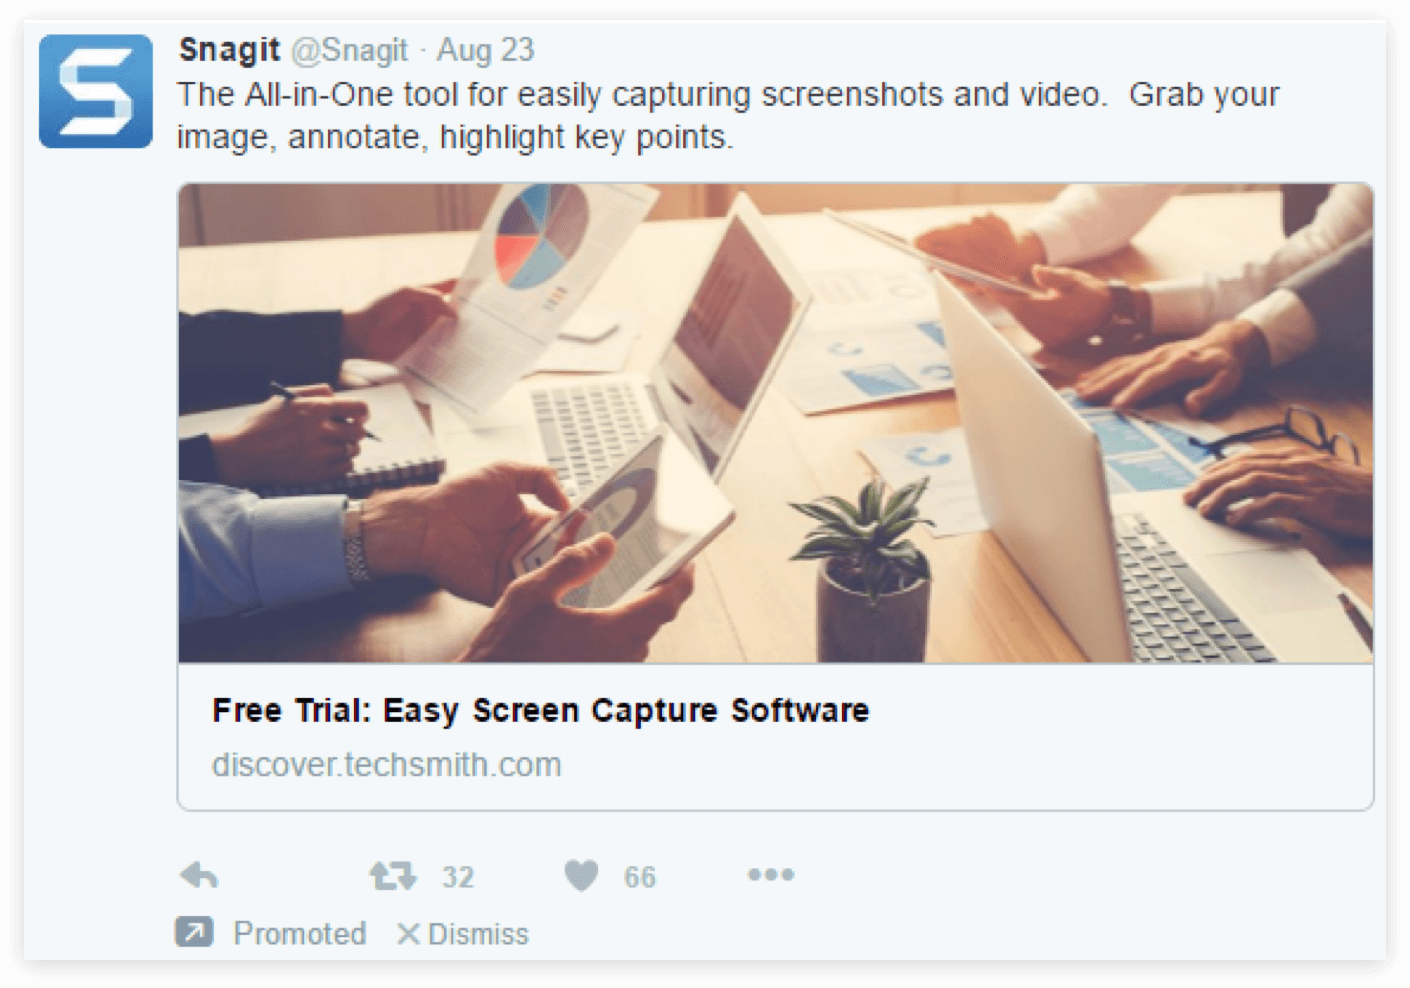 Twitter promoted post